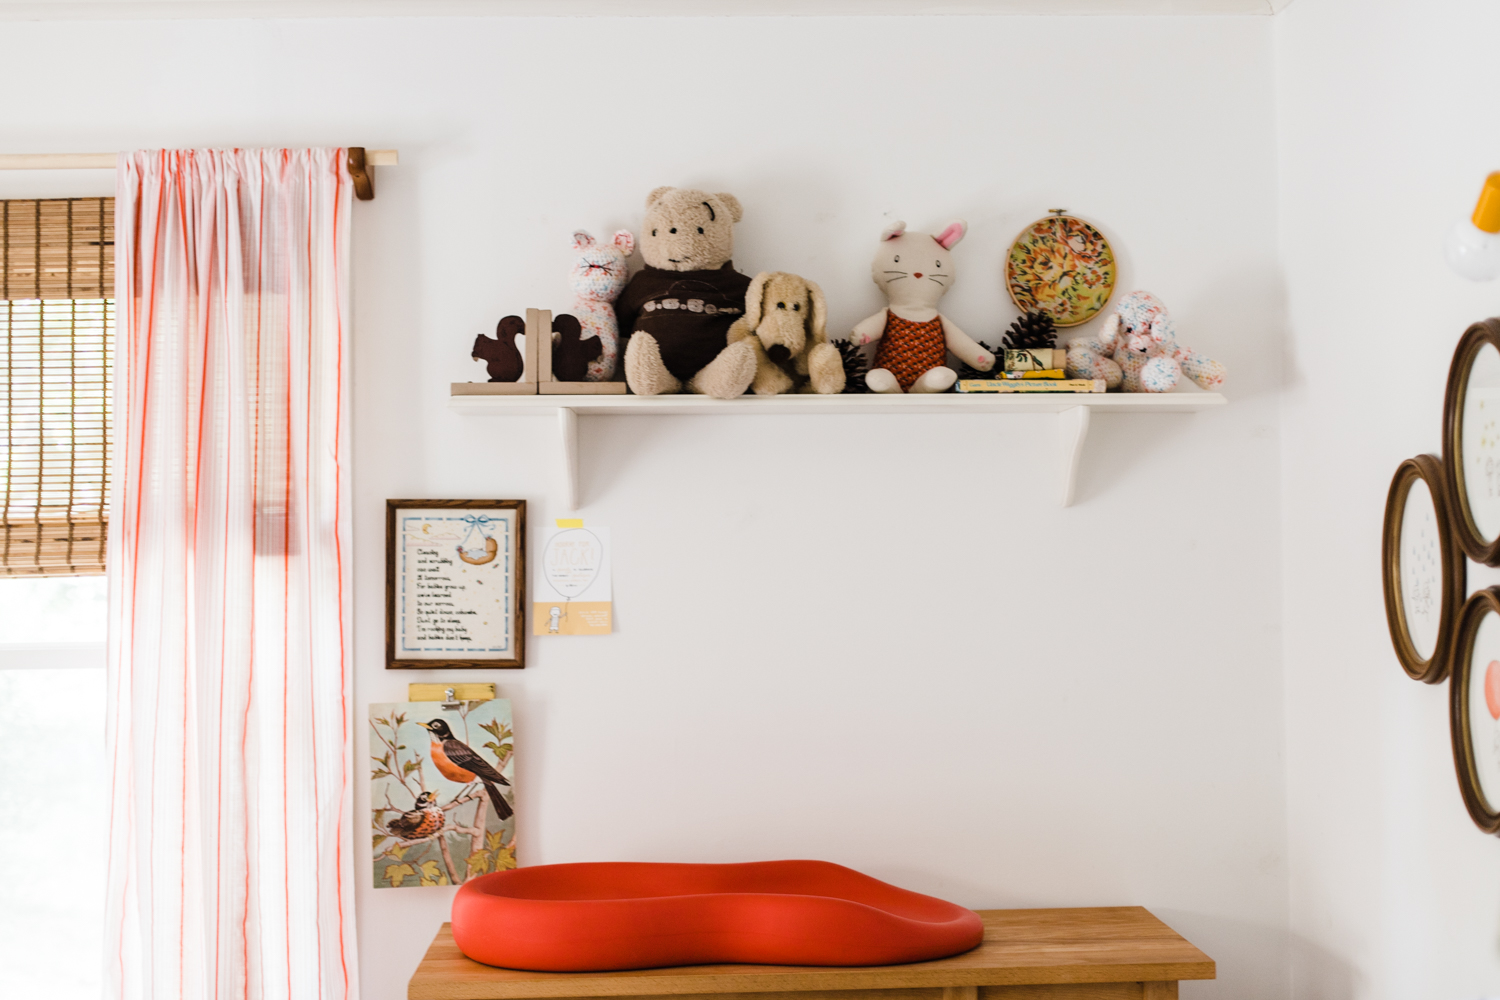 I switched up the decor above the changing table a bit. I wanted a place to sit special stuffed animals that were a little more fragile.These are toys I enjoy seeing every day, and they are a little more protected than the animals stuffed in a vintage toy chest (note that Caroline is still allowed to play with these animals; I'm not a monster).